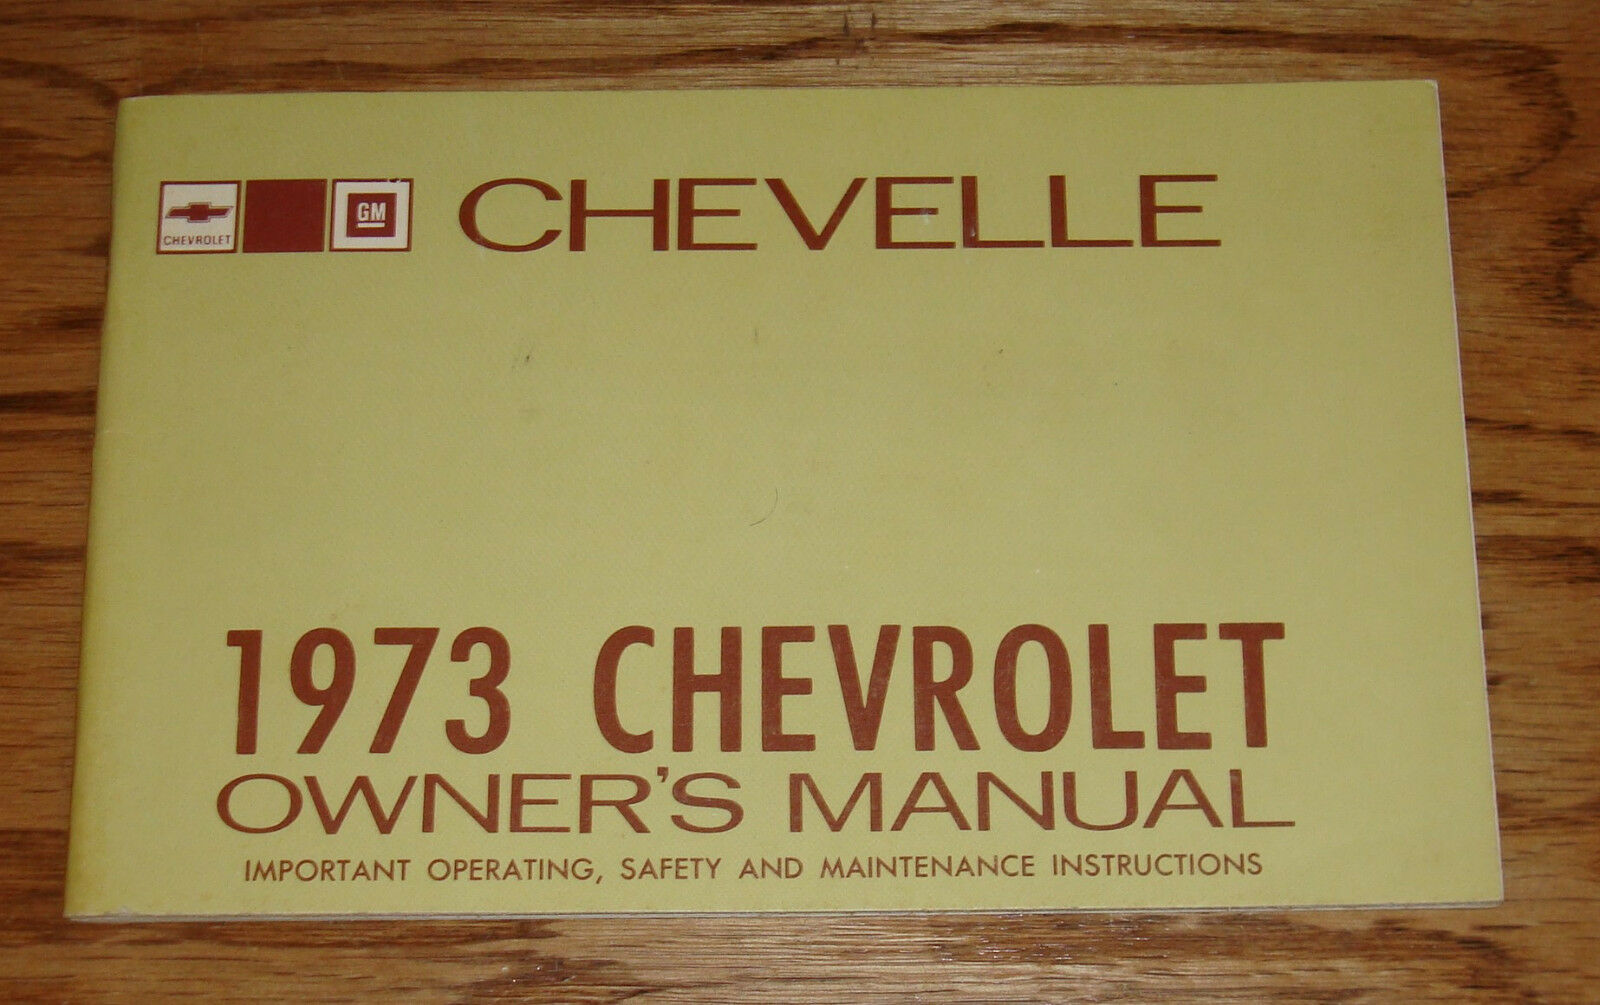 Original 1973 Chevrolet Chevelle Owners Operators Manual 73 Chevy Vega Wiring Diagram 1 Of 1only Available